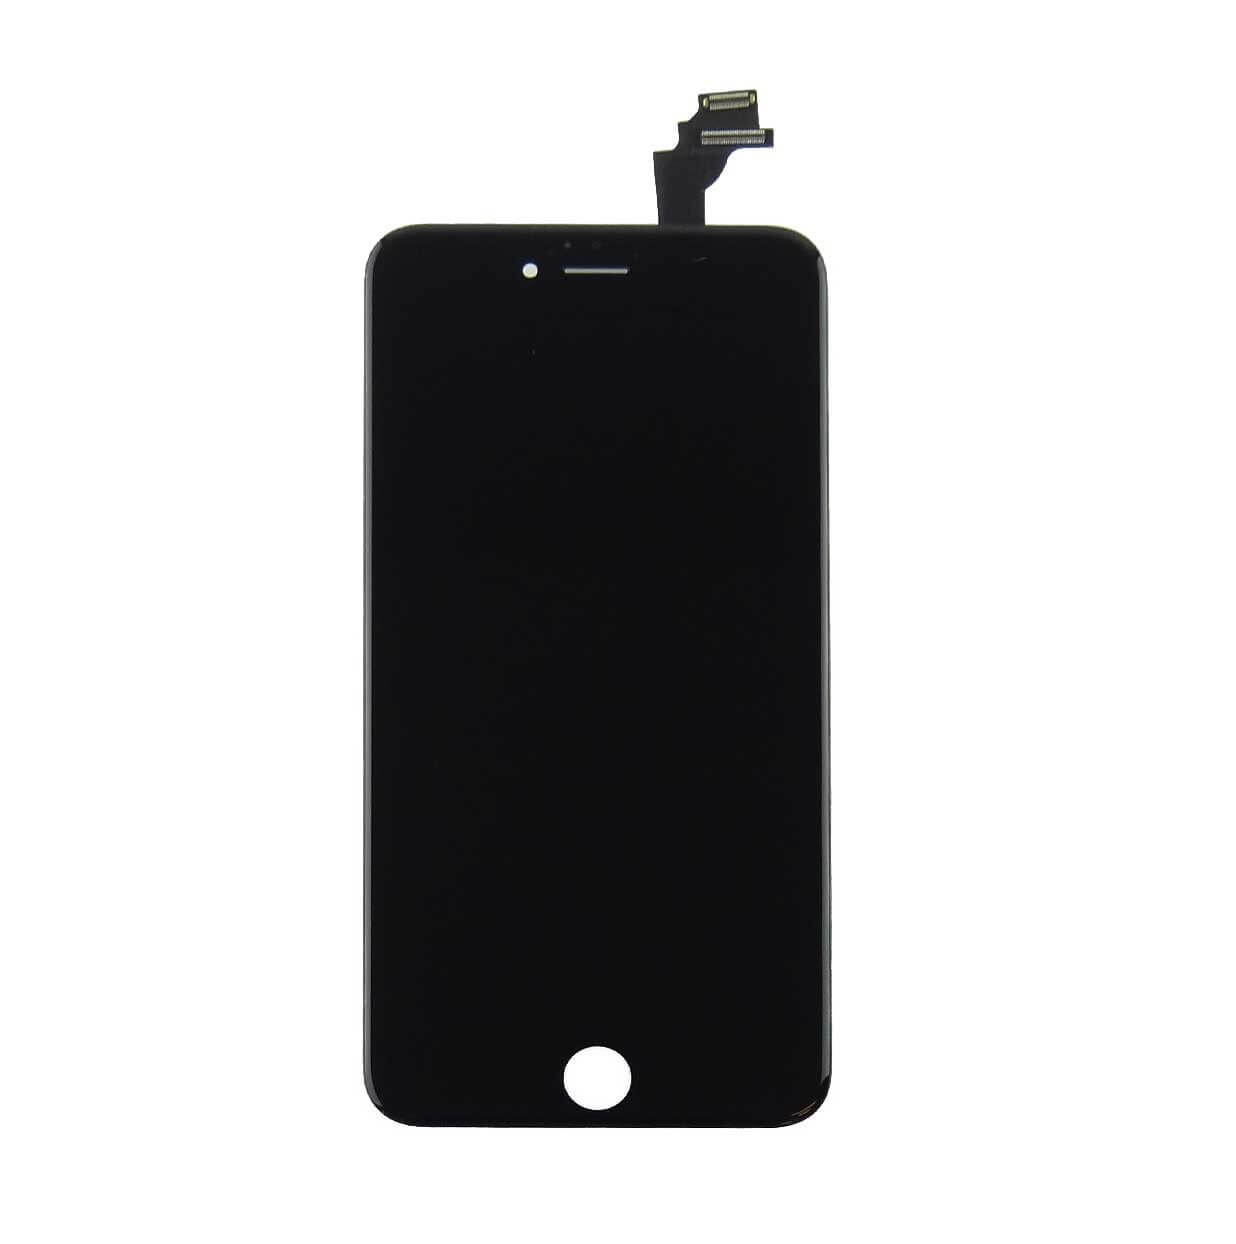 timeless design 54829 ae465 Original Display with Touch Screen for Apple iPhone 6